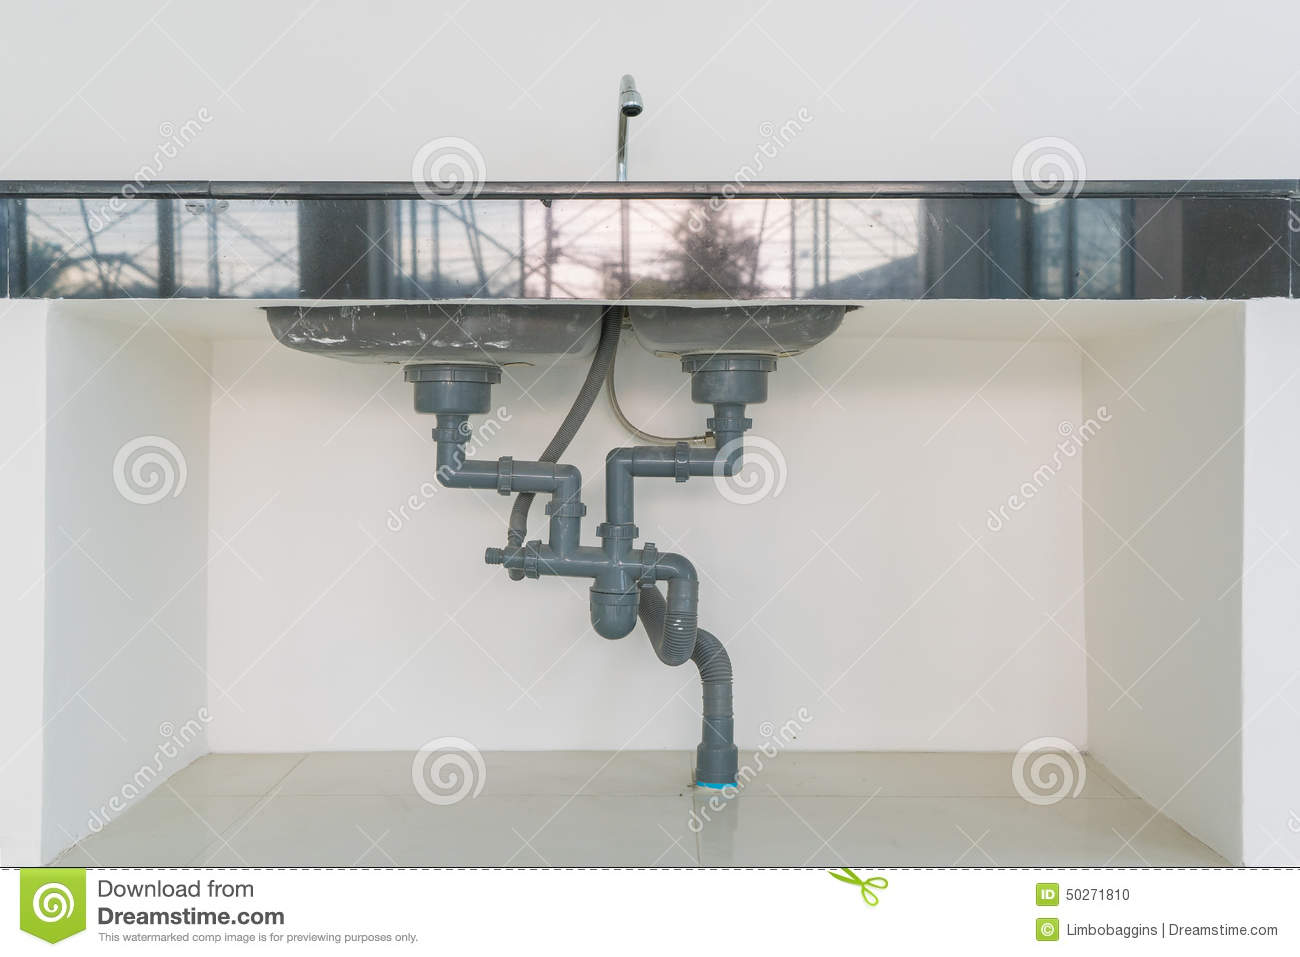 water pipes live beneath - 800×533